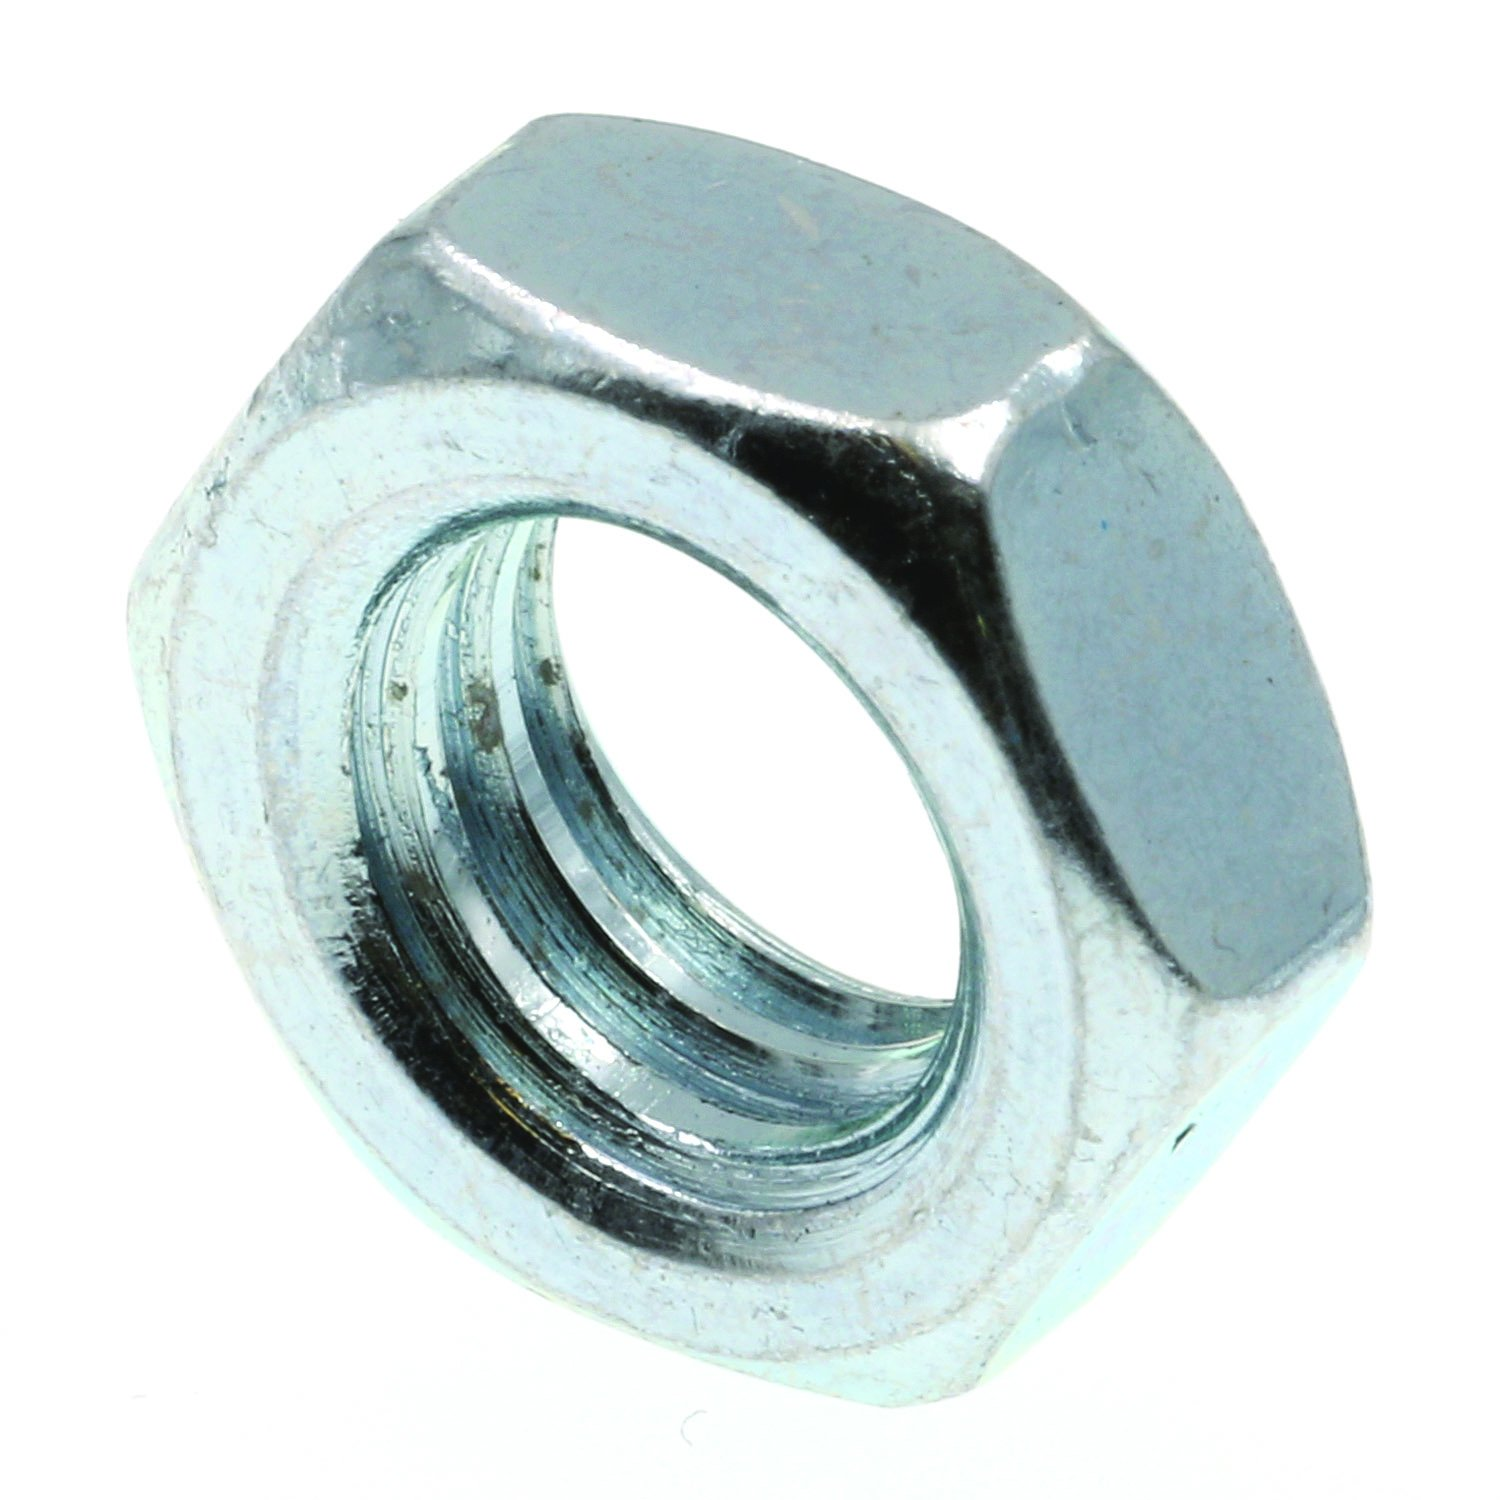 100-Pack Prime-Line 9075885 Hex Jam Nuts 3//8 in.-16 A563 Grade A Zinc Plated Steel